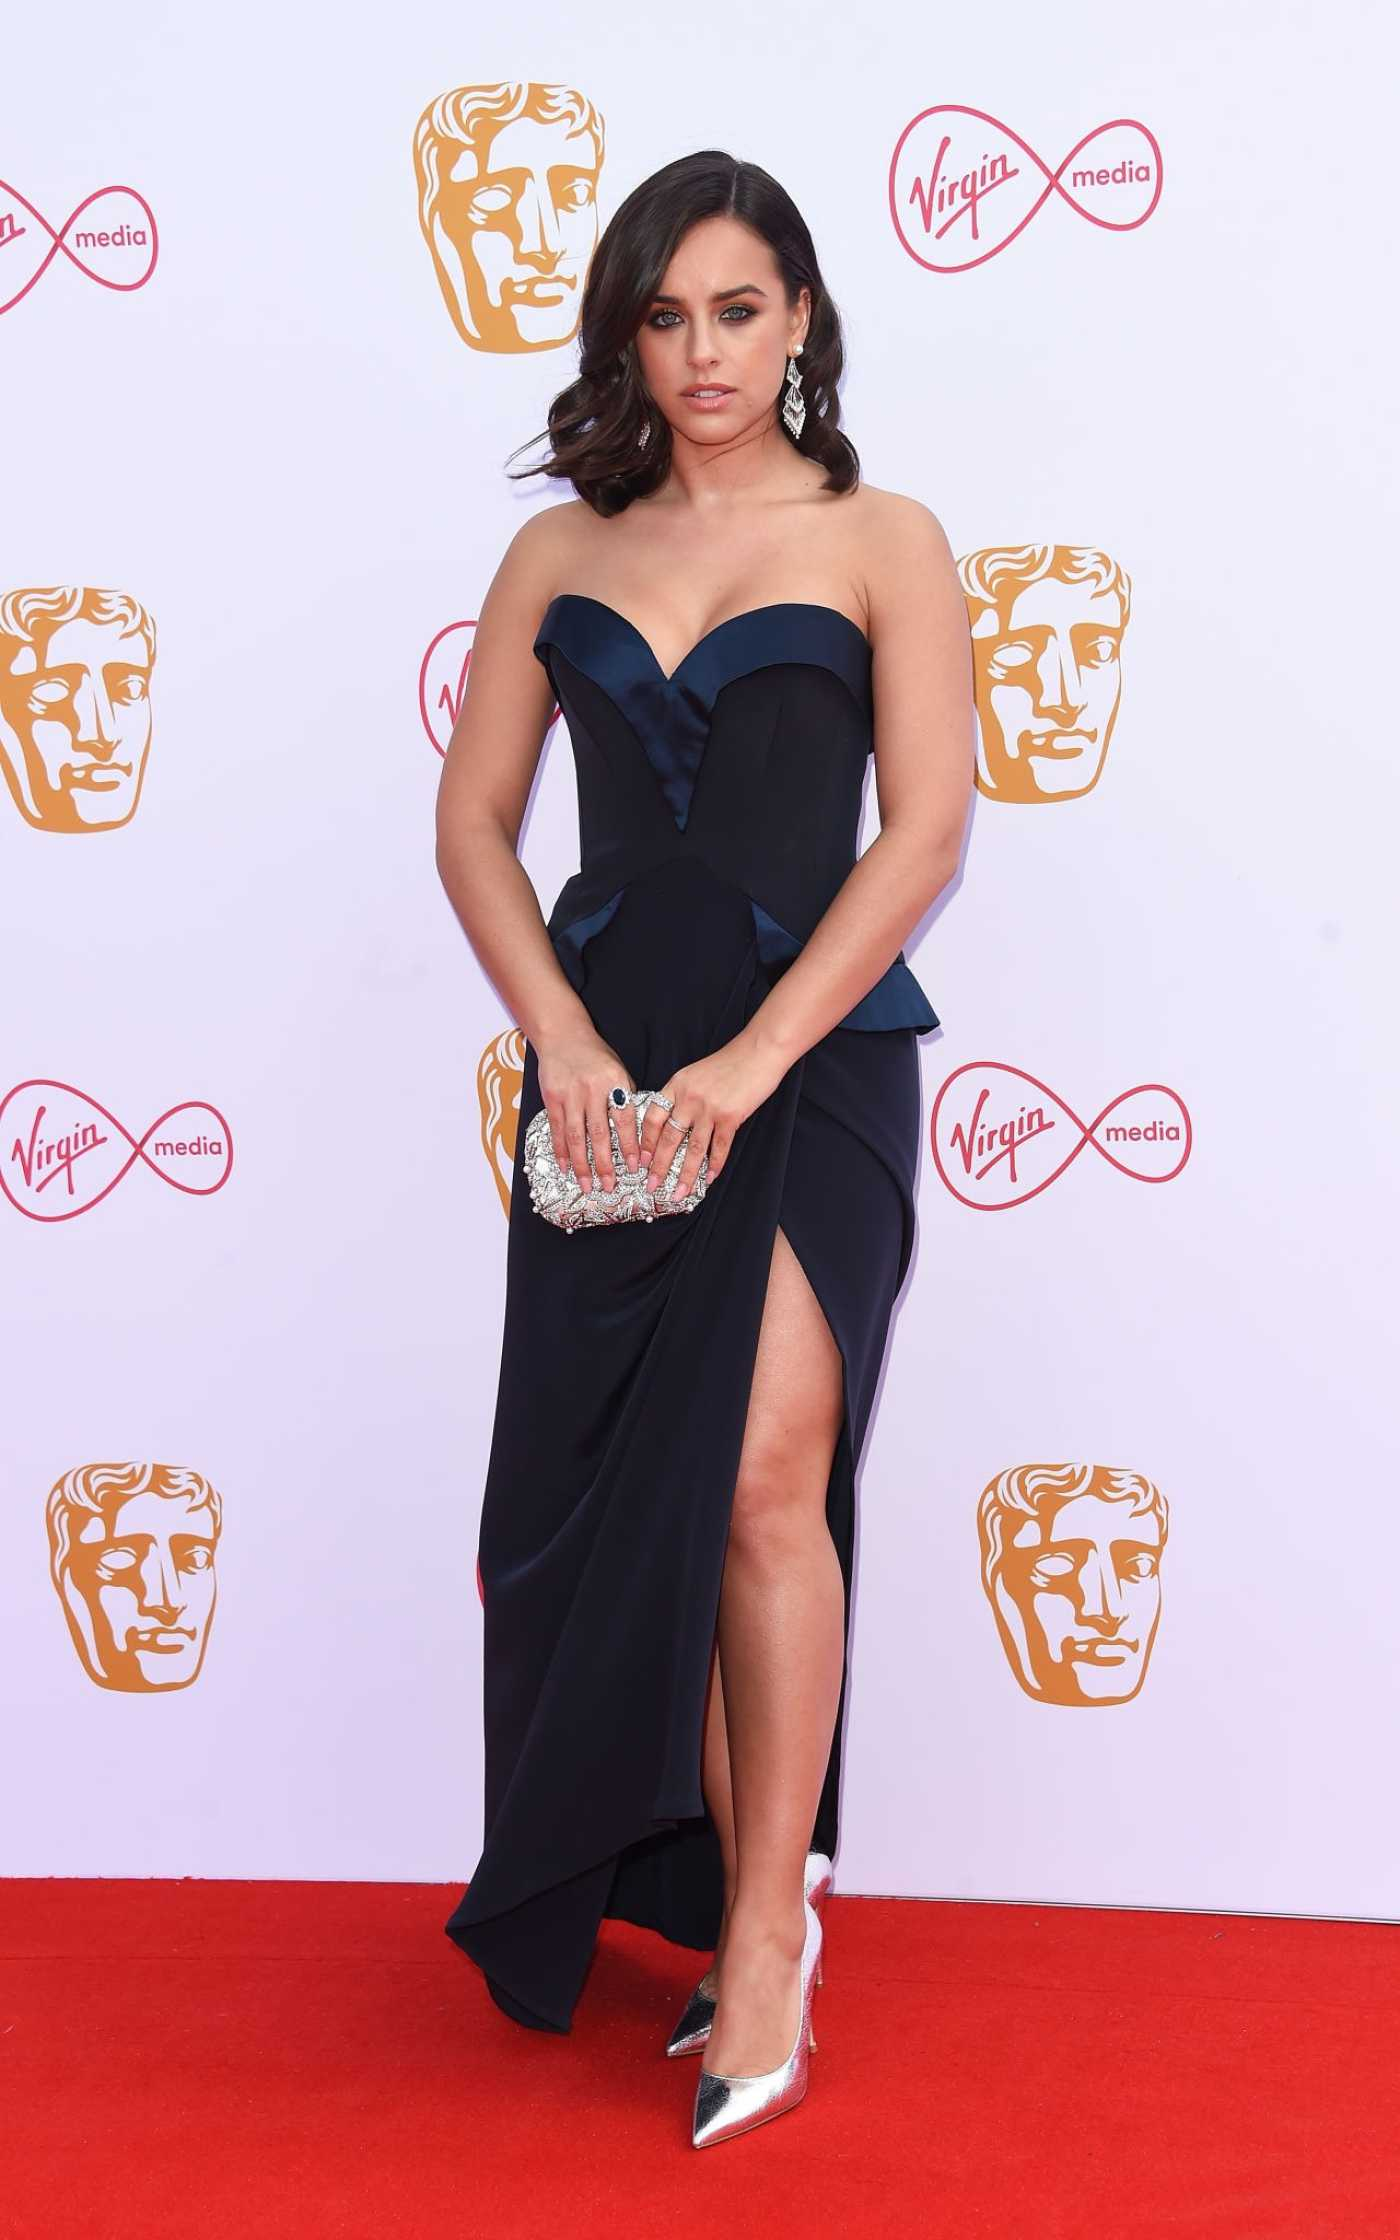 Georgia May Foote Attends British Academy Television Awards at Royal Festival Hall in London 05/12/2019